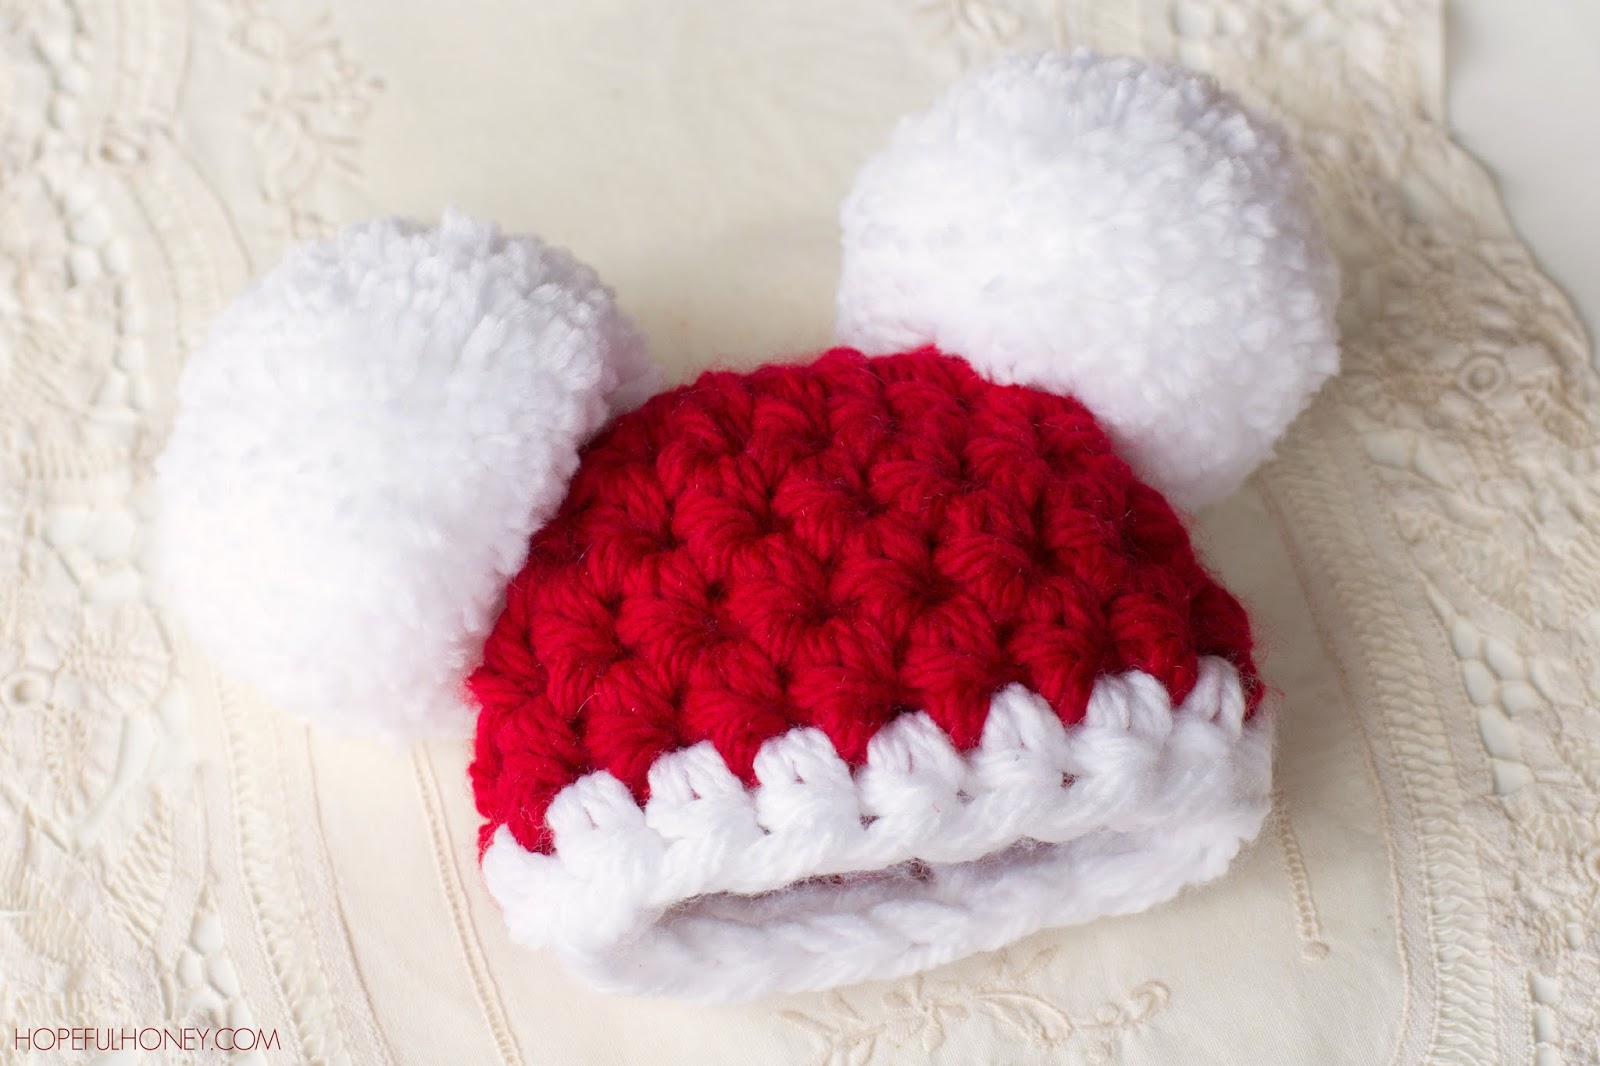 Free Crochet Patterns Using Pom Pom Yarn : Hopeful Honey Craft, Crochet, Create: Baby Santa Claus ...